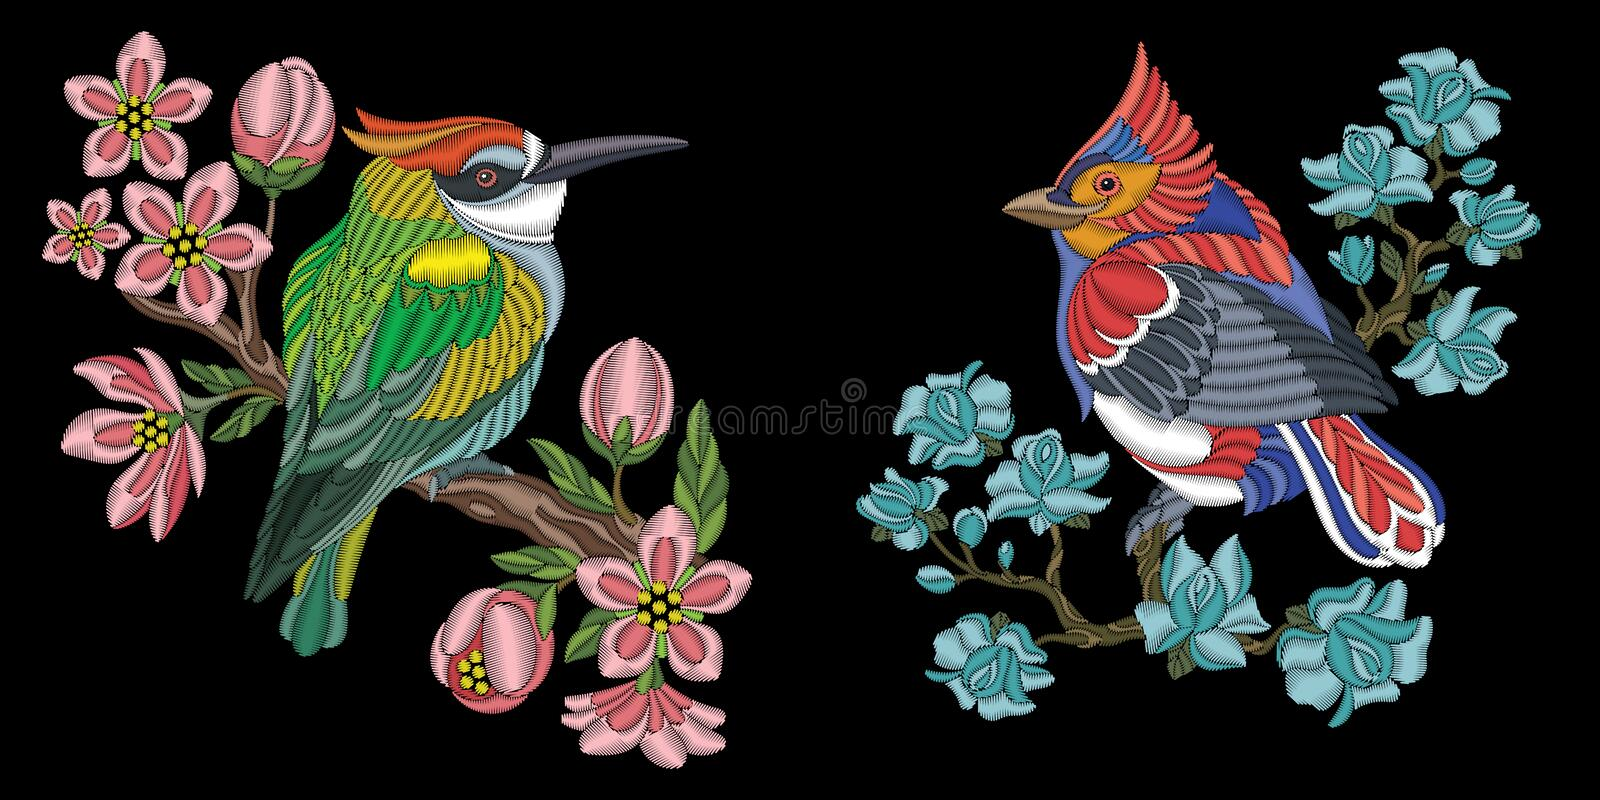 Embroidery birds design royalty free stock images